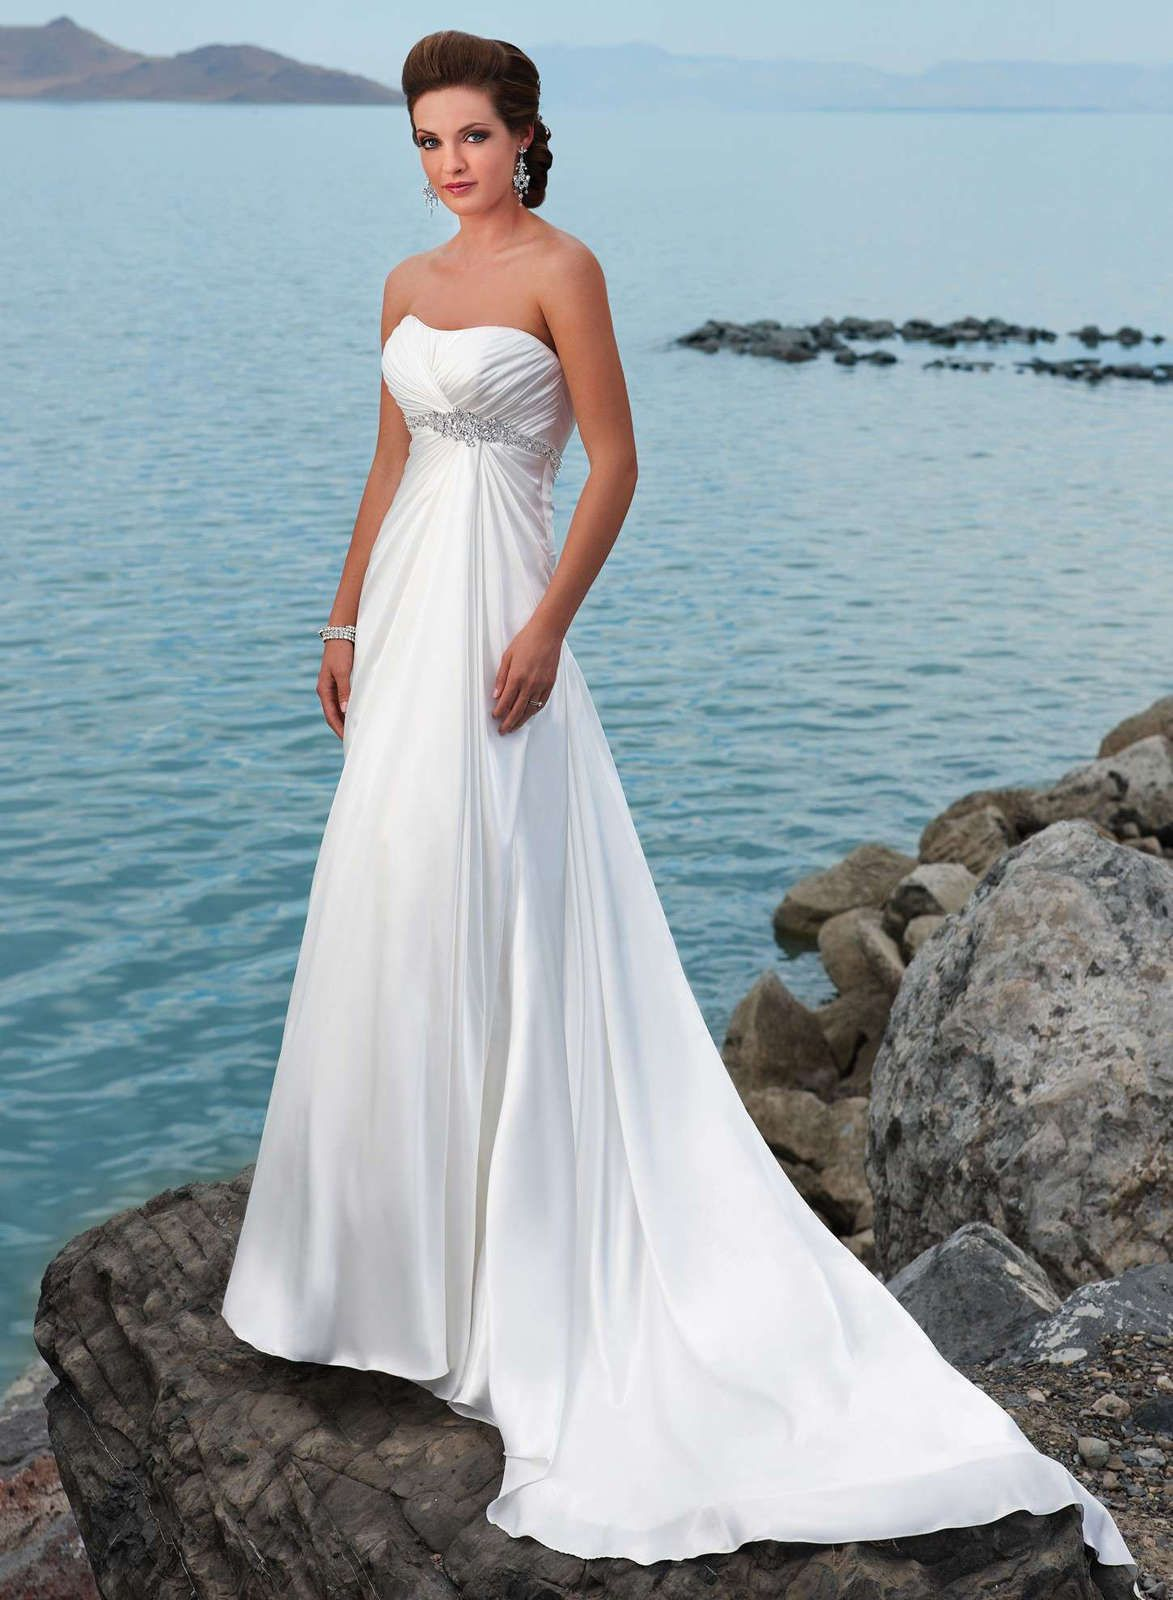 Cheap Wedding Dresses for the Beach - Best Wedding Dress for Pear ...